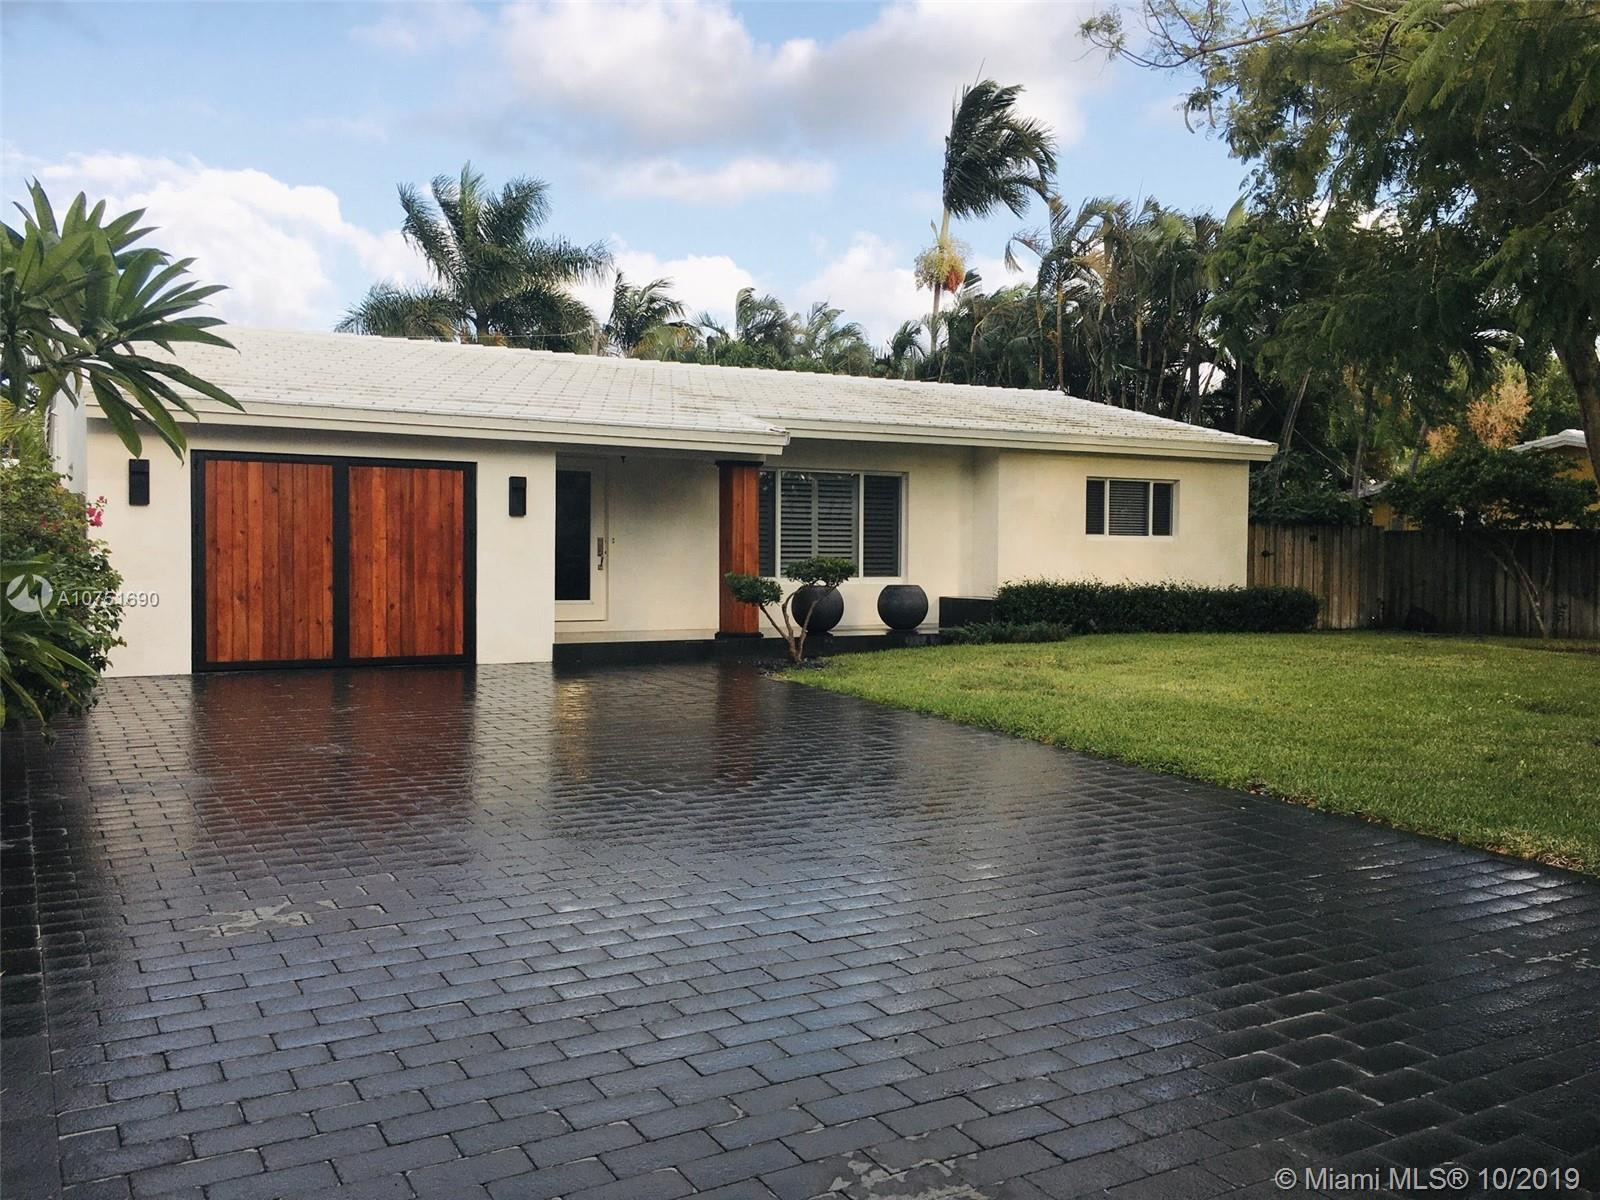 Move in ready! Just bring your toothbrush to  this newly renovated single family in perfect Wilton Manors. This is great for a those looking for a Wilton Manors oasis, where they can invite guests to splash in the pool, lounge in the sun, or enjoy drinks before heading out to the strip for dinner. New landscaping includes 18 Japanese blueberry trees, multiple palms, new sodding, new driveway and exterior work. Pool is large and well kept. All new landscaping in the back. Kitchen and bathrooms have been upgraded. Owner is happy to produce records on replacement of mechanicals as well as roof and system maintenance. Garage has plenty of space to fit two smaller cars or a large car and two motorcycles. Each bedroom can fit a kingsized bed.Make your Wilton Manors dreams come true!